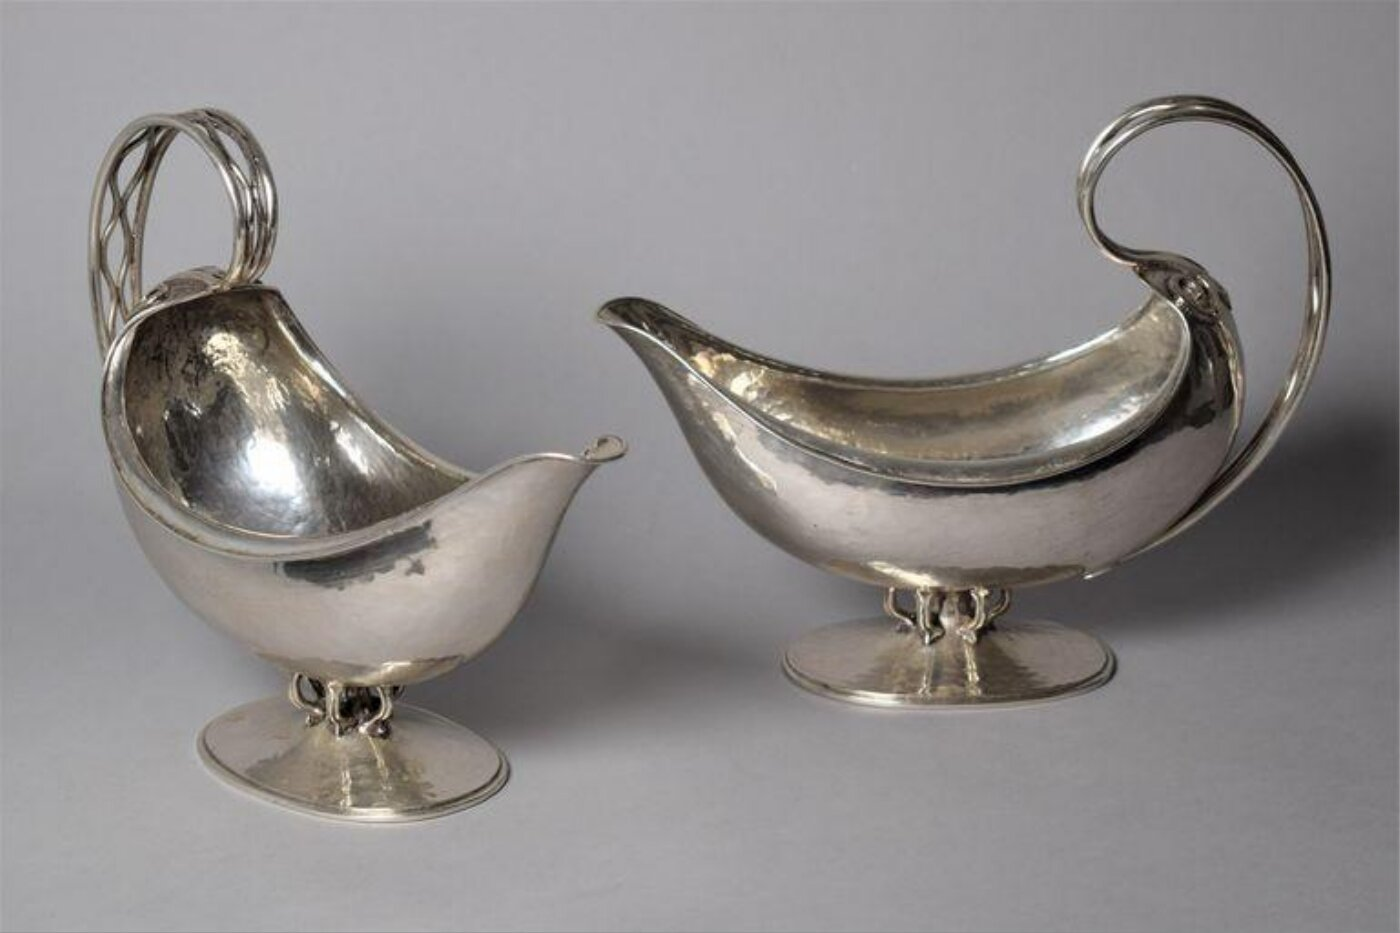 Pair of Sauce Boats by Omar Ramsden